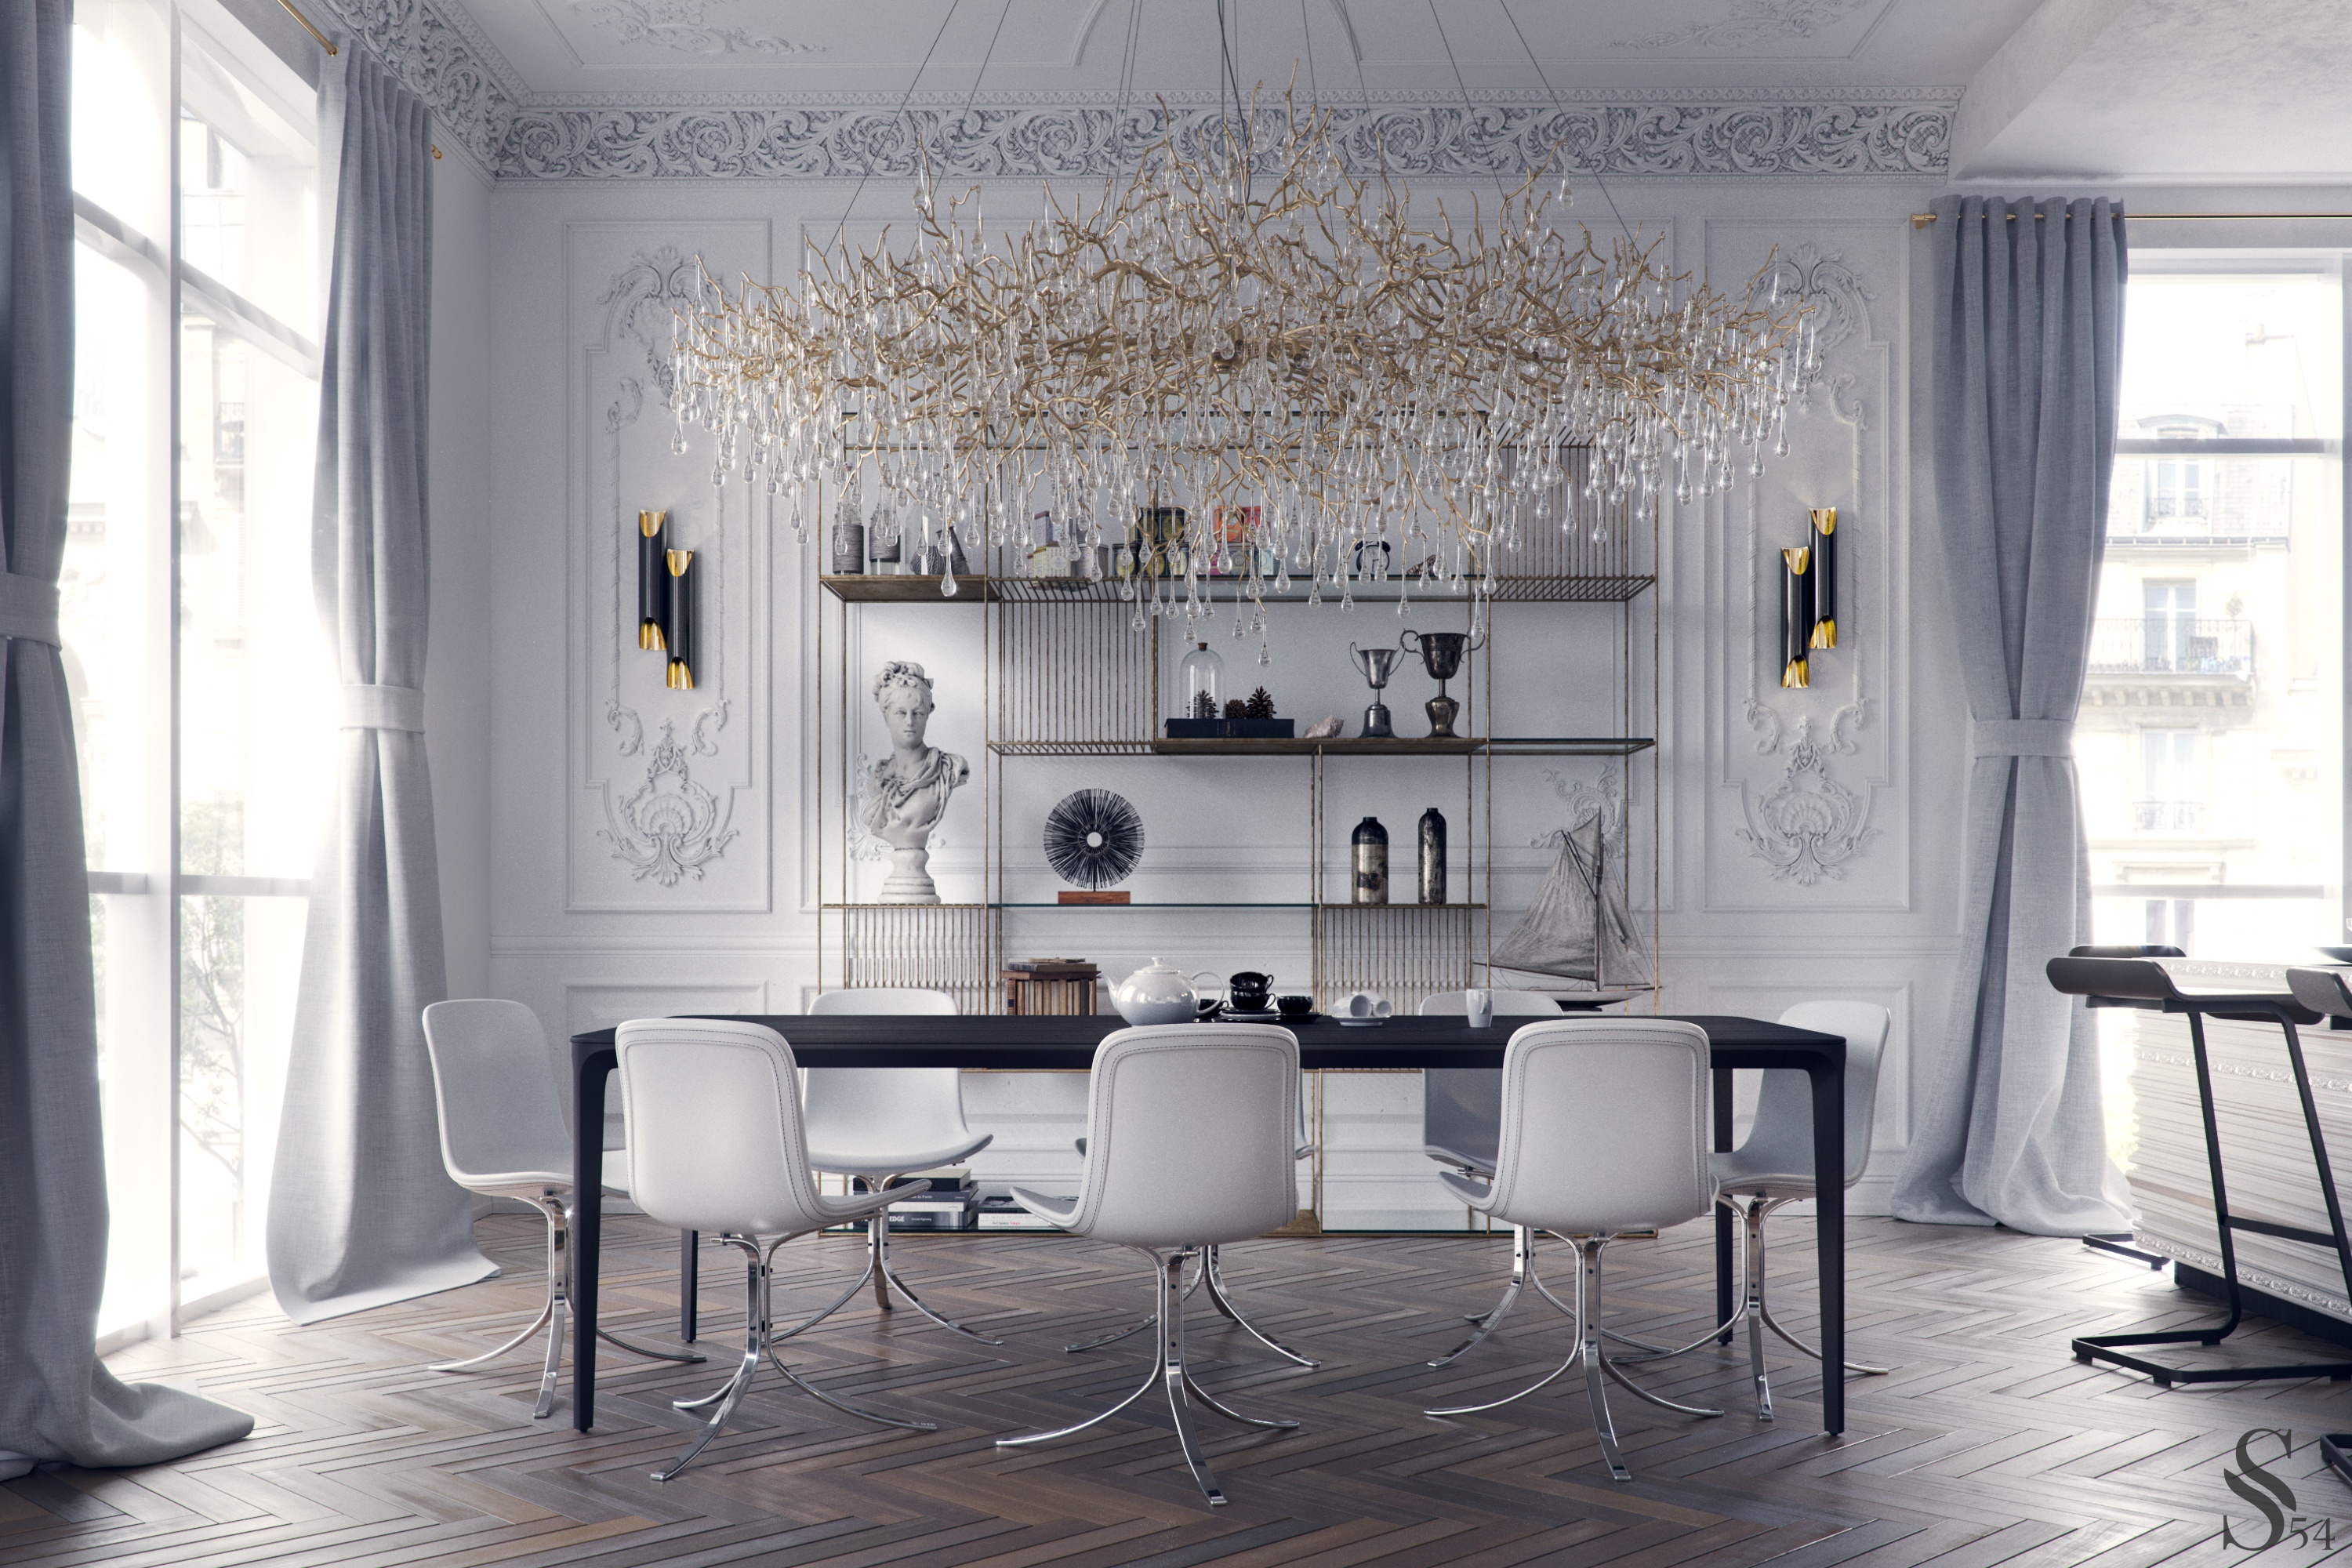 New Trends What You Don't Know About Galliano Wall Lamp 4 new trends New Trends: What You Don't Know About Galliano Wall Lamp New Trends What You Dont Know About Galliano Wall Lamp 4